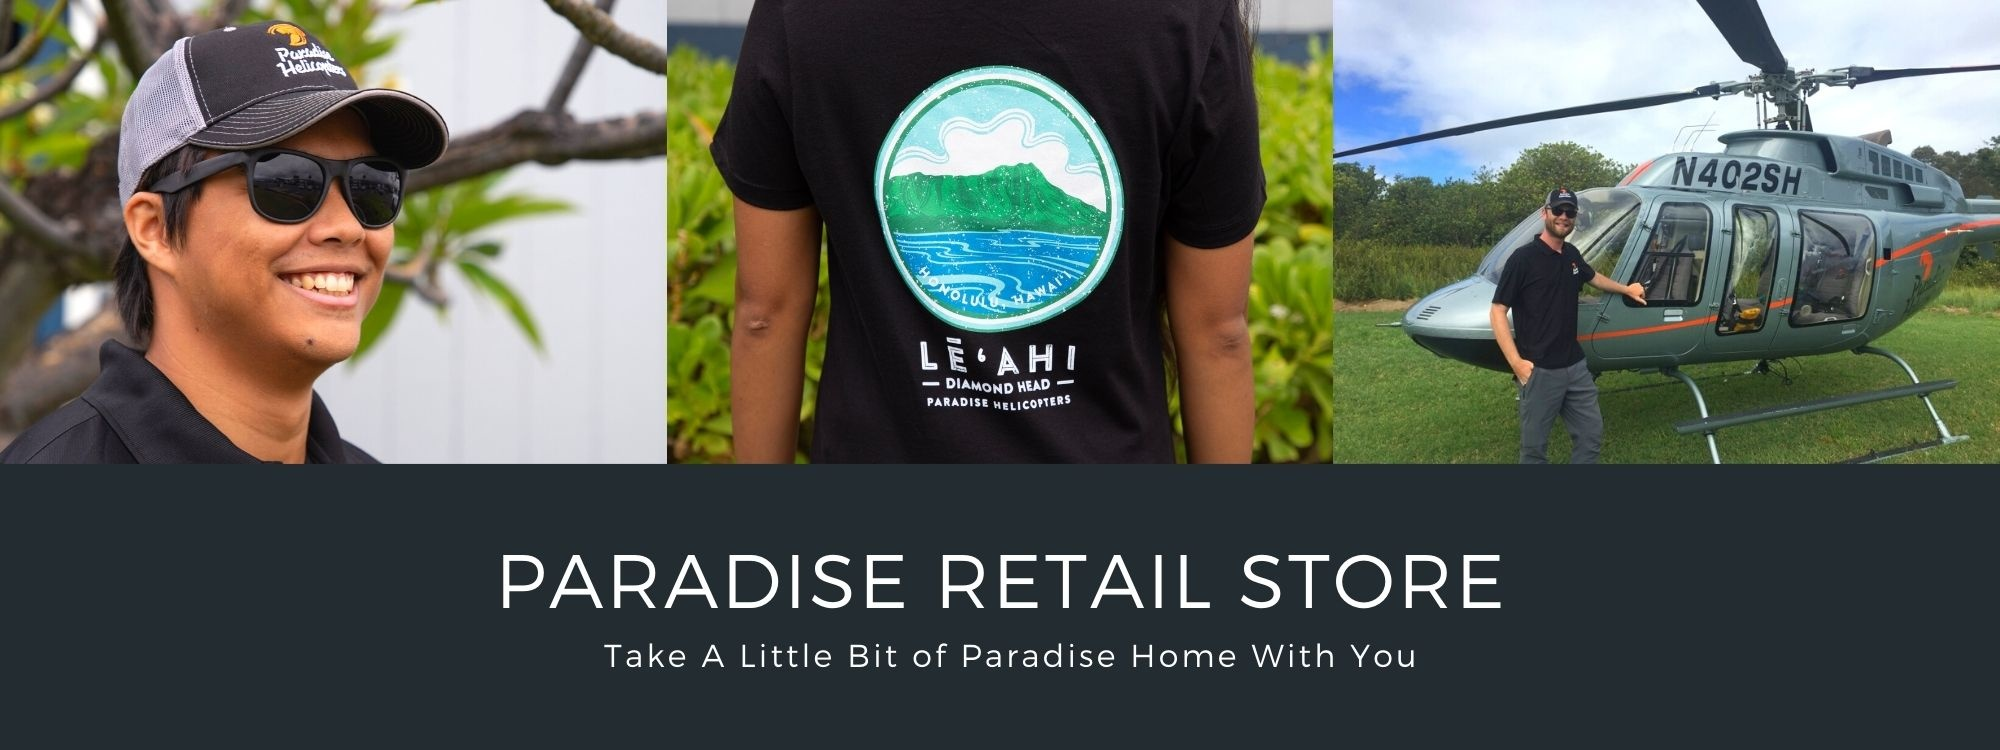 Paradise Helicopters Retail Store